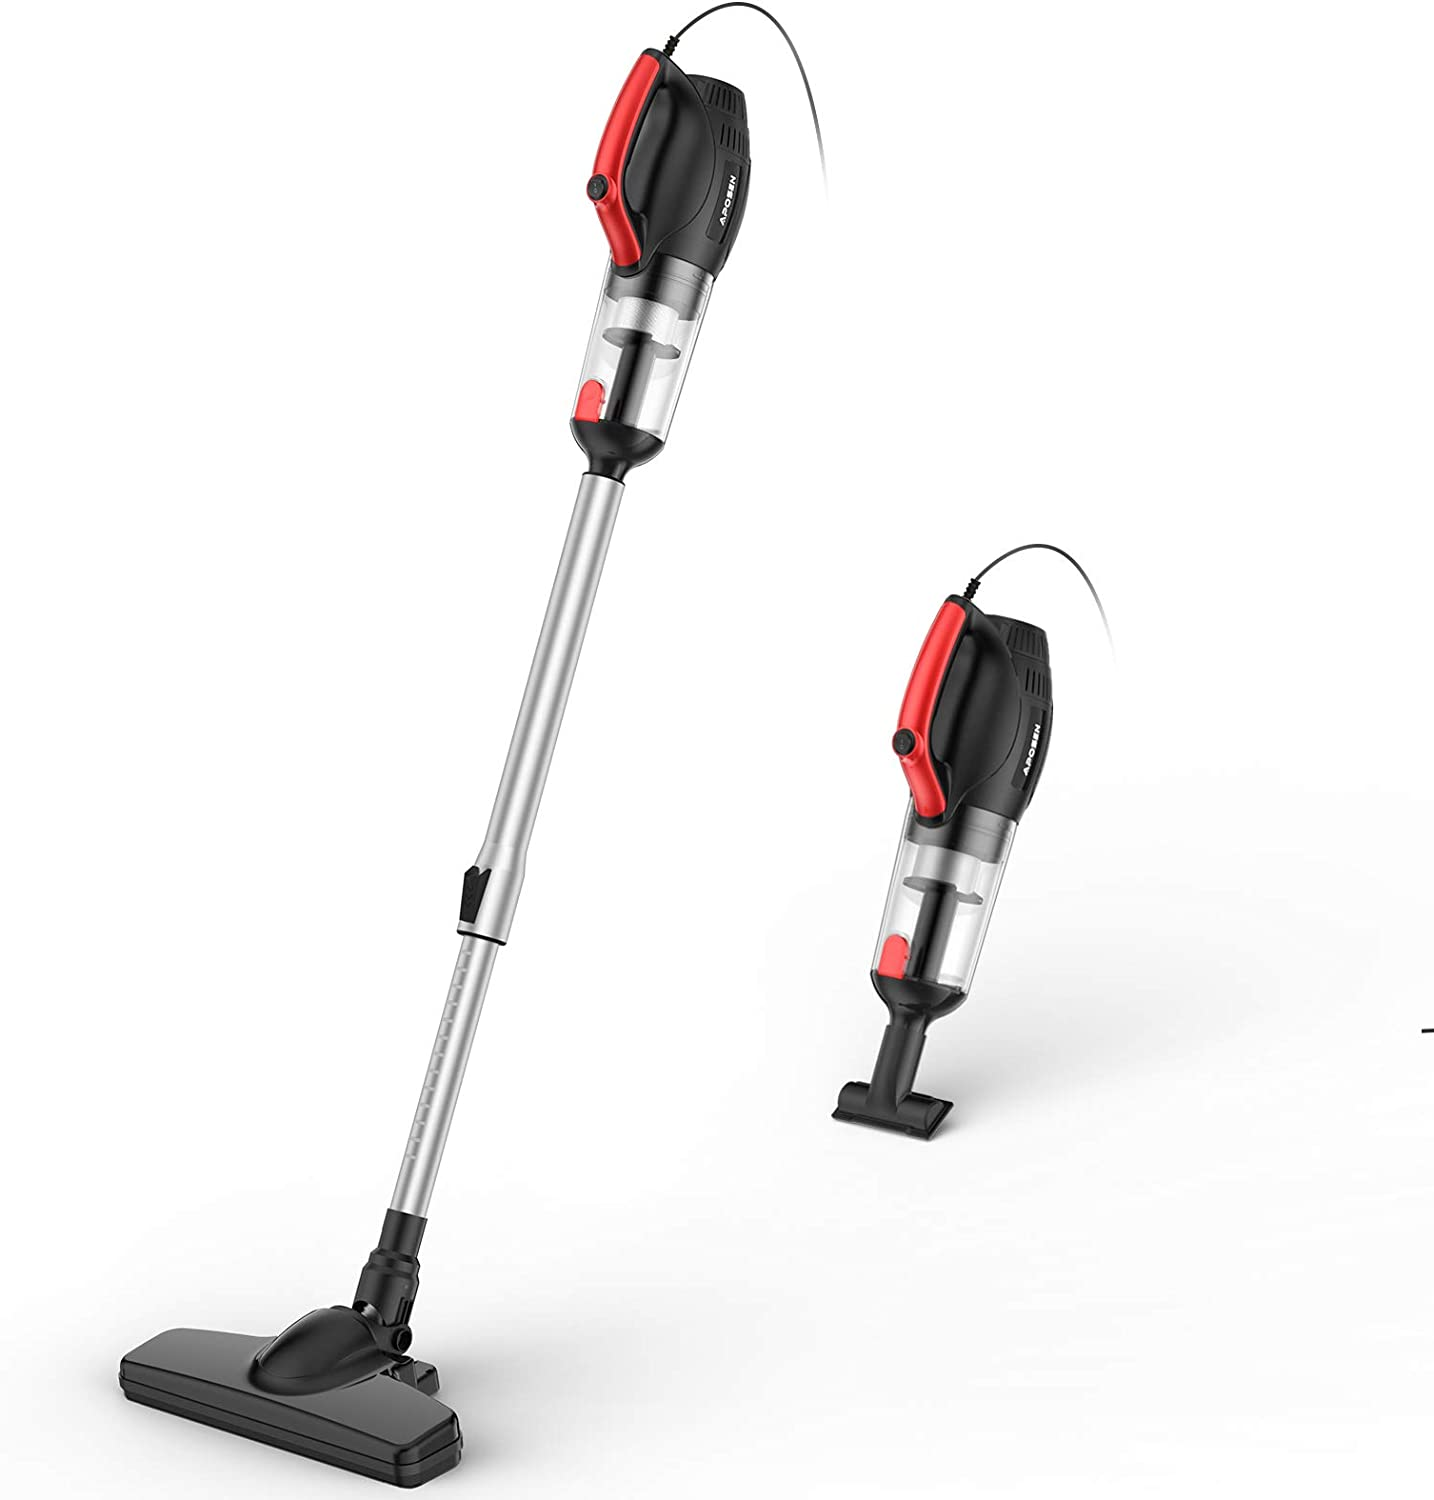 APOSEN Vacuum Cleaner, 500W Powerful Suction, 4-in-1 Stick Vacuum Cleaner with HEPA Filters for Hard Floor Lightweight Home pet Hair